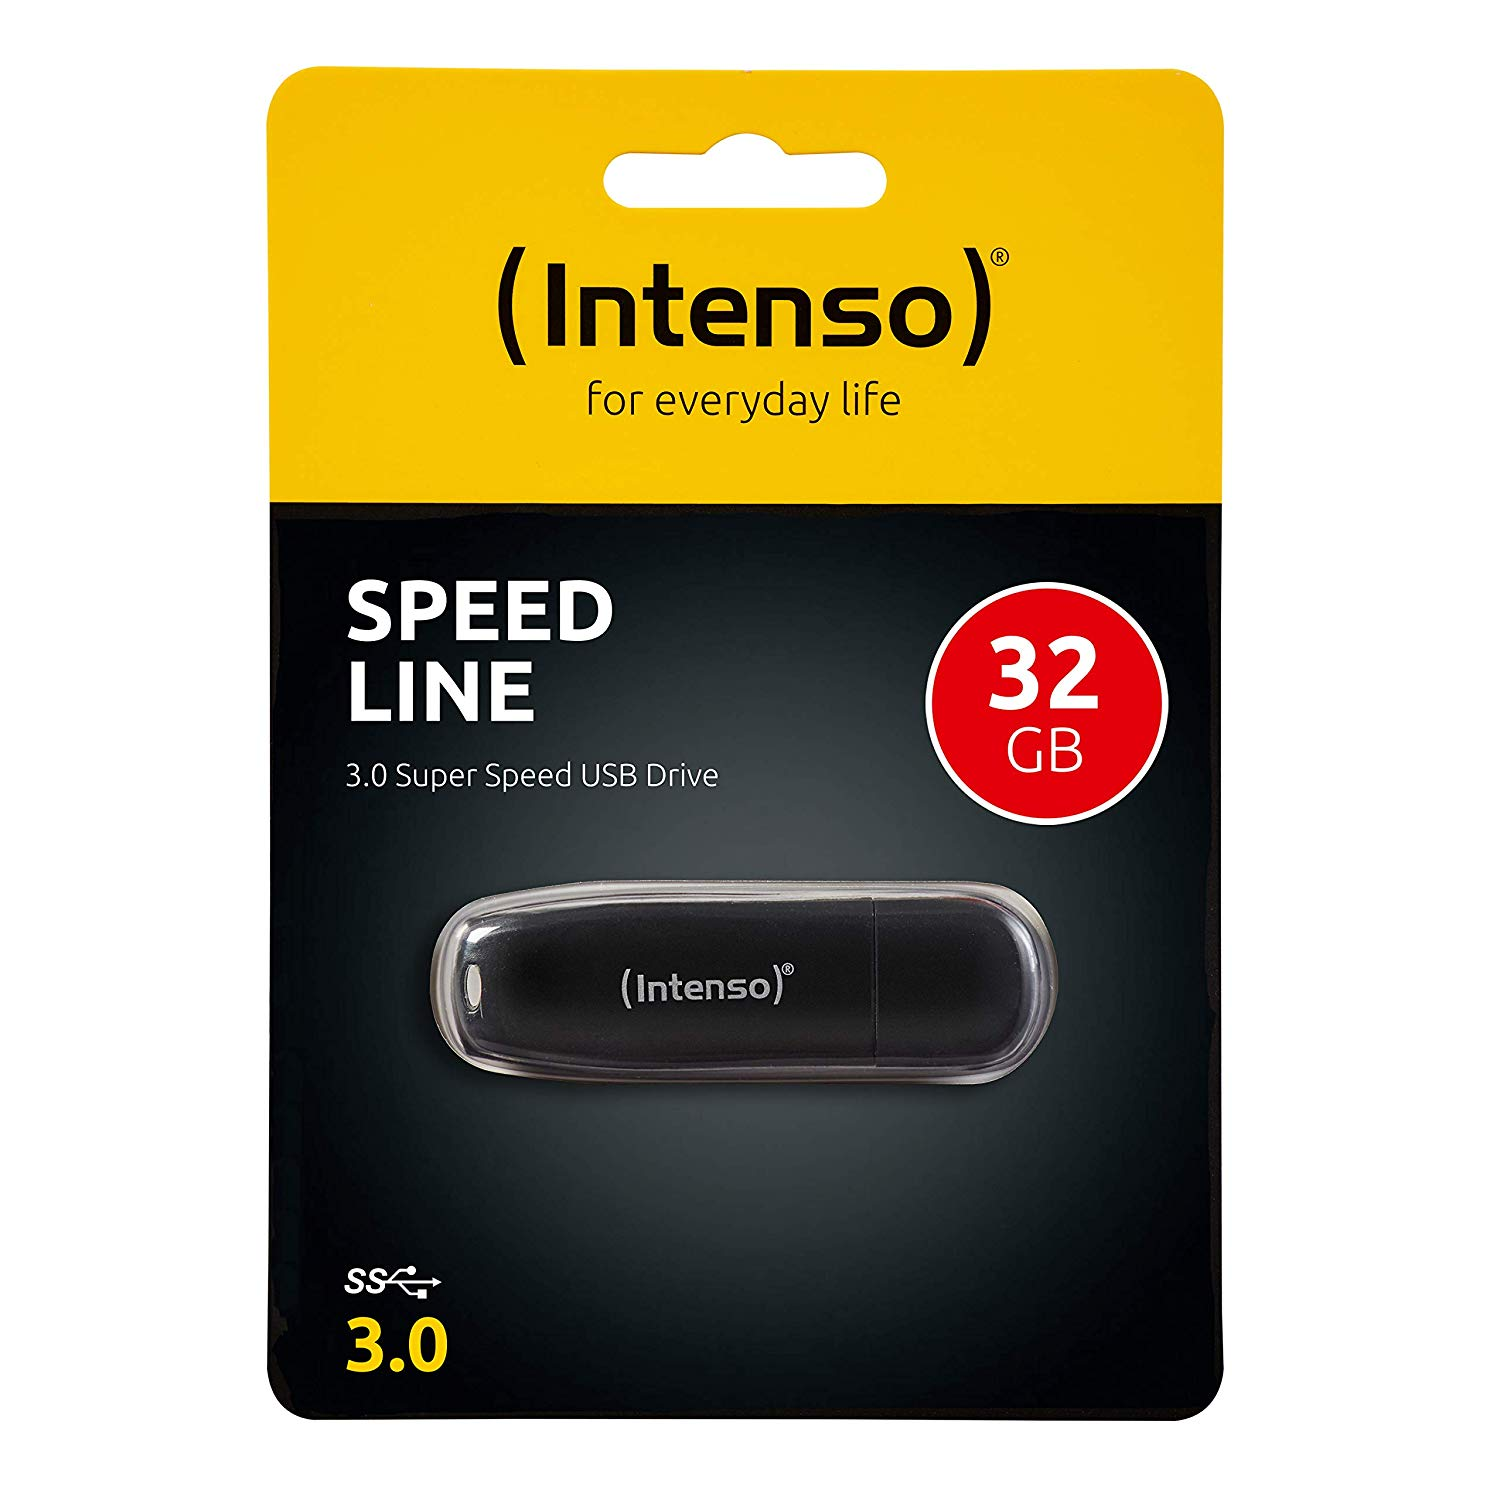 Intenso USB Stick 32GB Speed Line 3.0